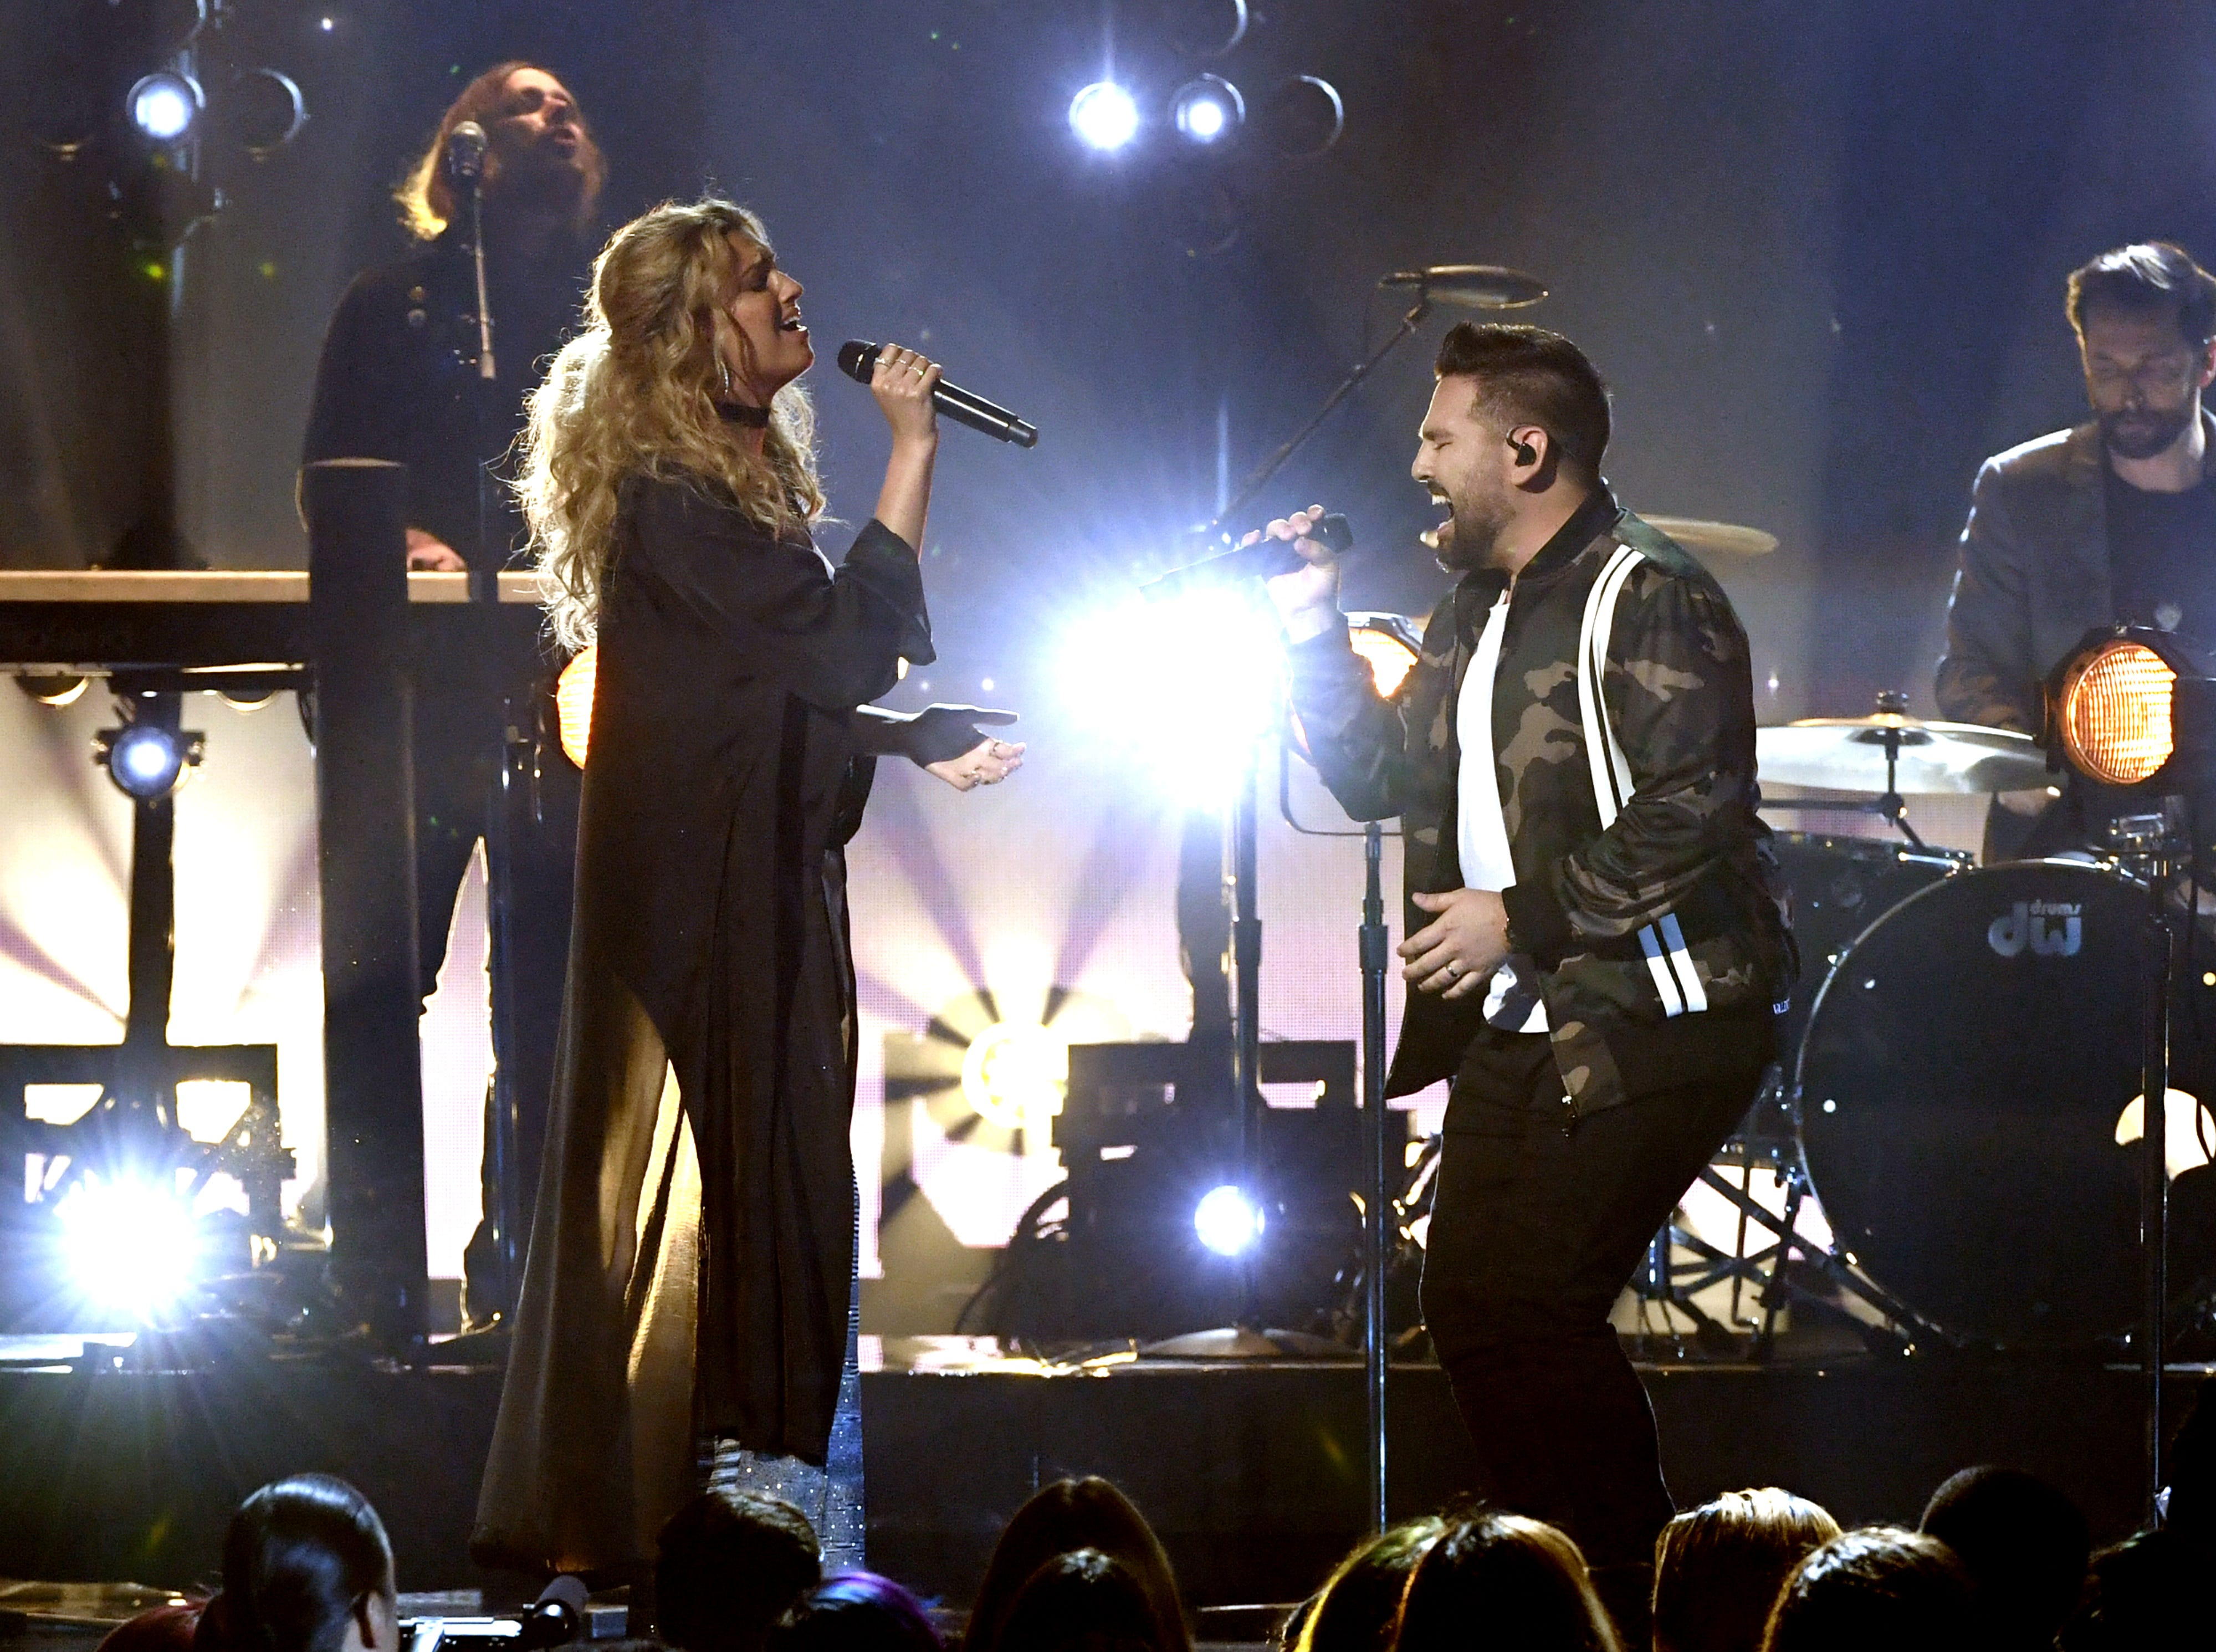 (L-R) Tori Kelly and Shay Mooney of Dan + Shay perform onstage during the 2019 Billboard Music Awards at MGM Grand Garden Arena on May 01, 2019 in Las Vegas, Nevada.